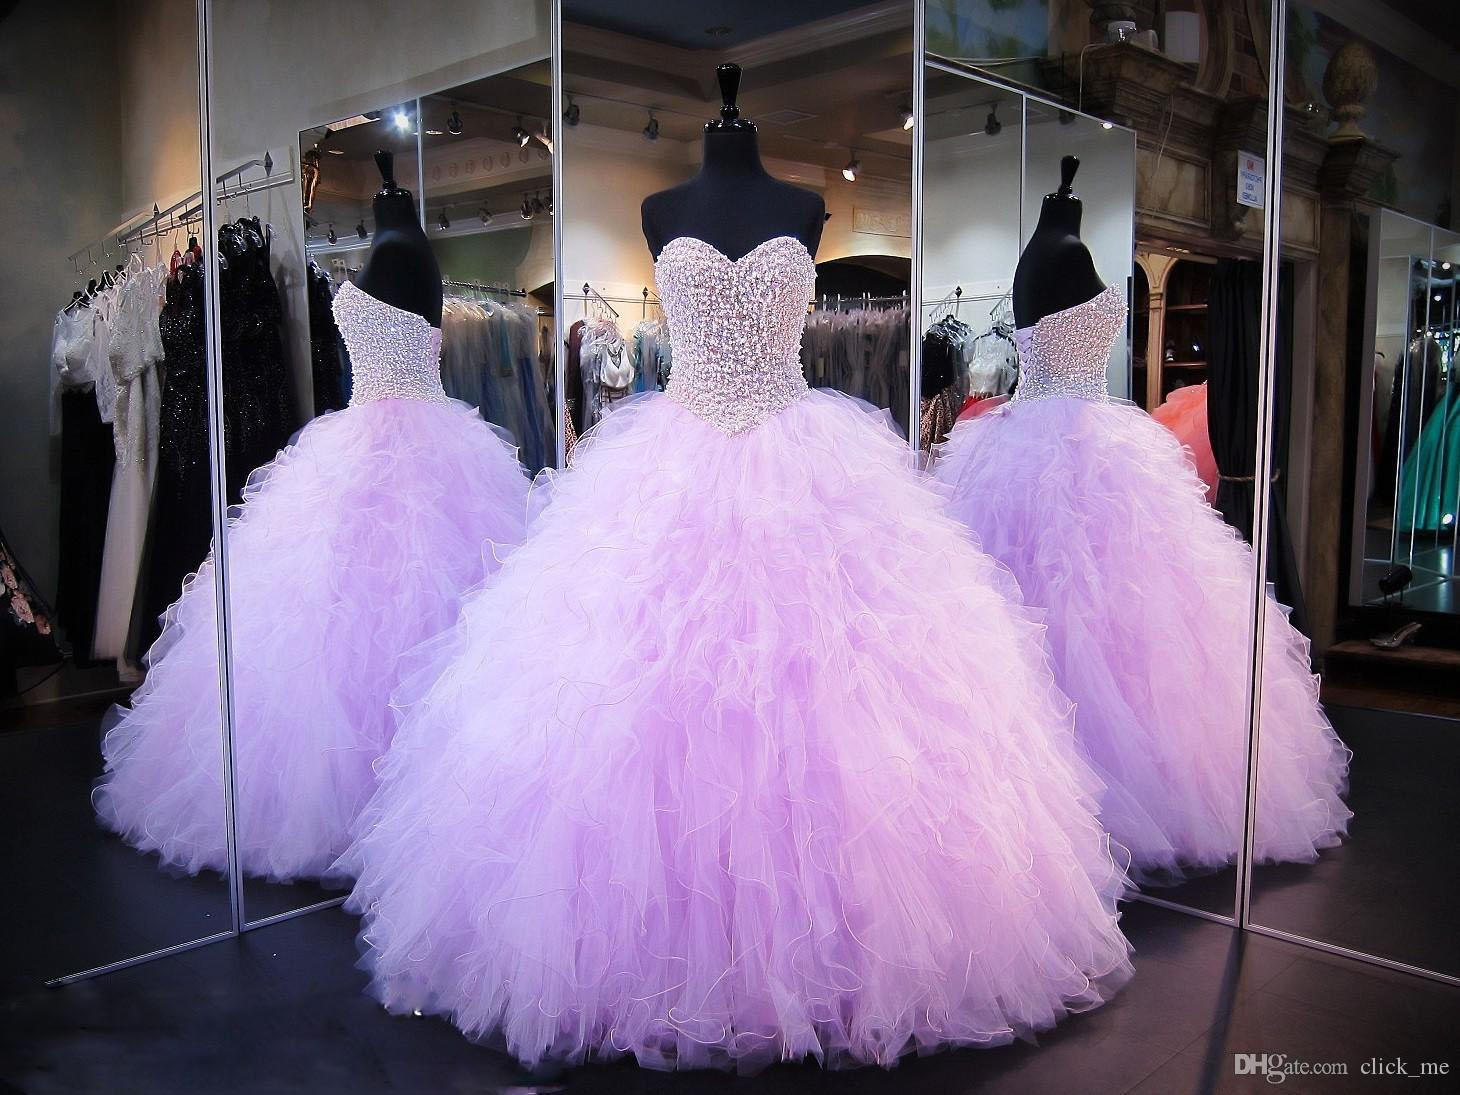 Lavender Quinceanera Dresses Ball Gown Corset Crystals Pearls Ruffles Tulle 2017 Lace Up Back Pageant Gowns For Girls Sweetheart Prom Dress